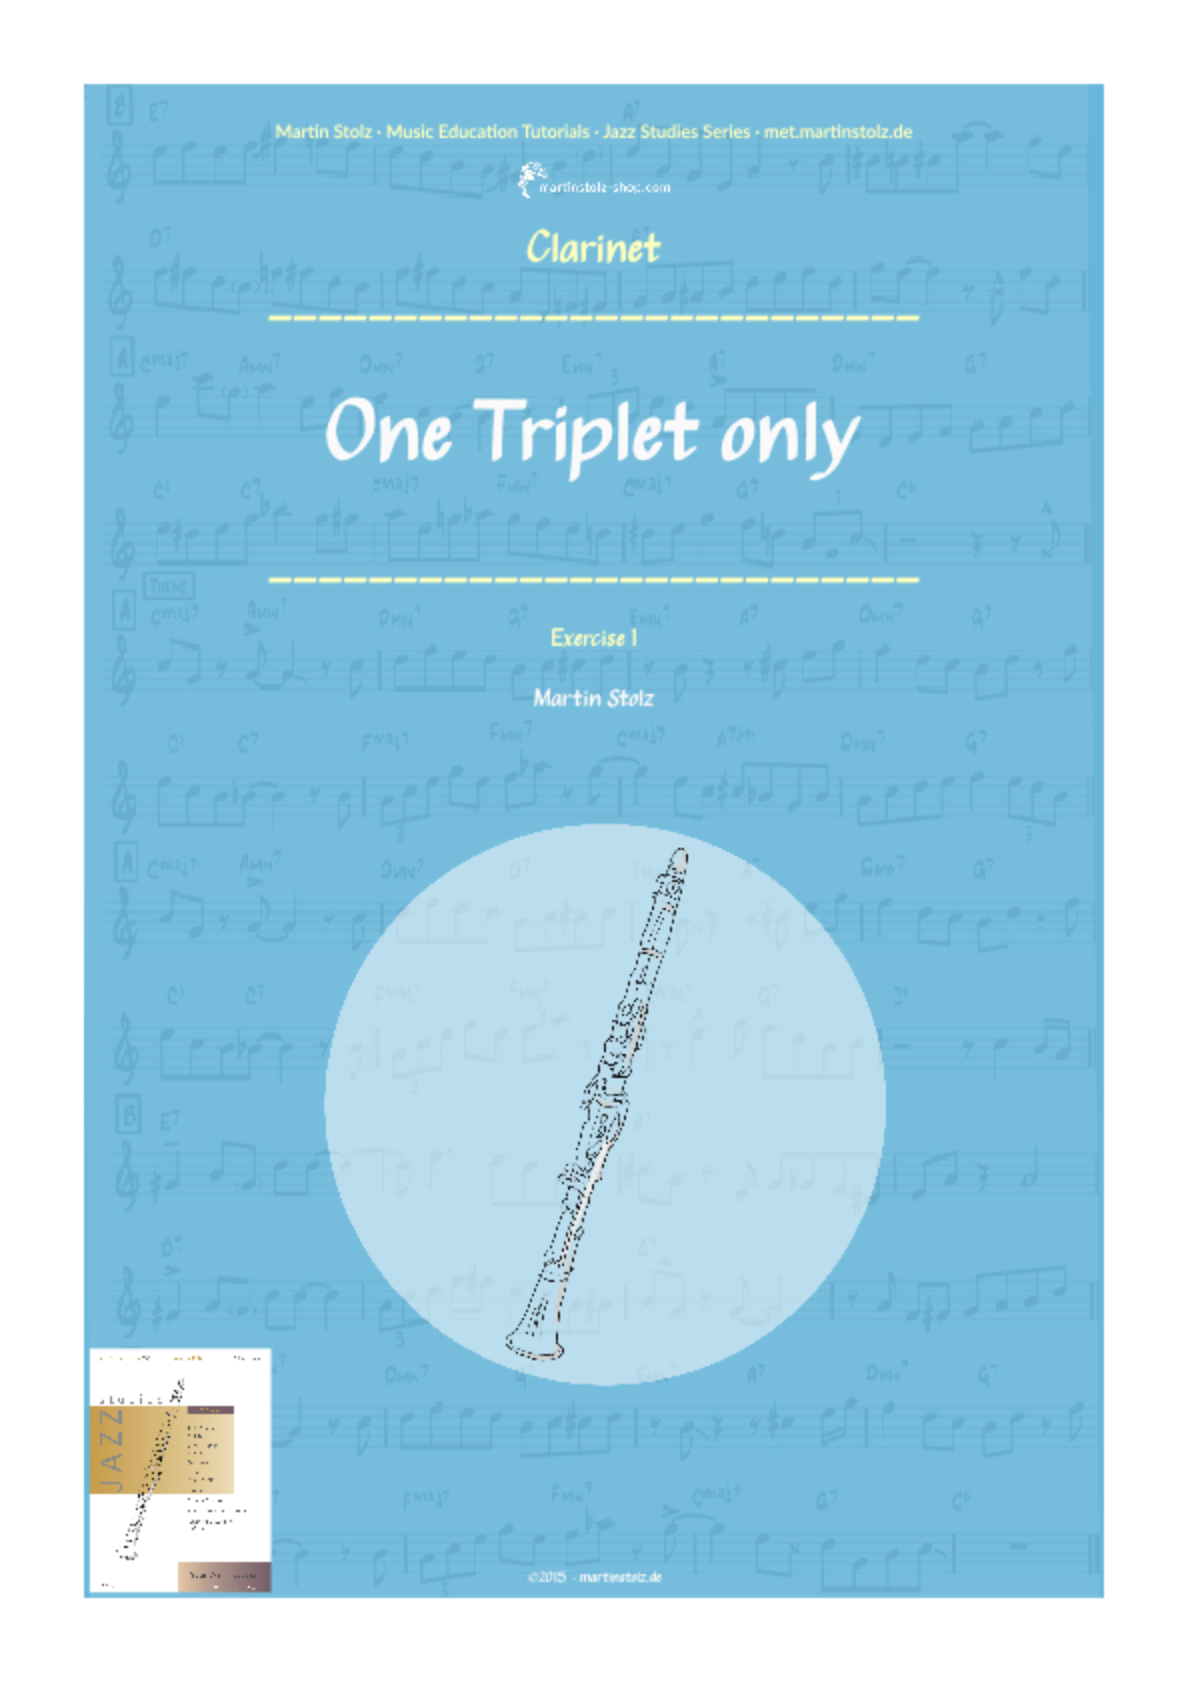 One Triplet only · Clarinet & Band